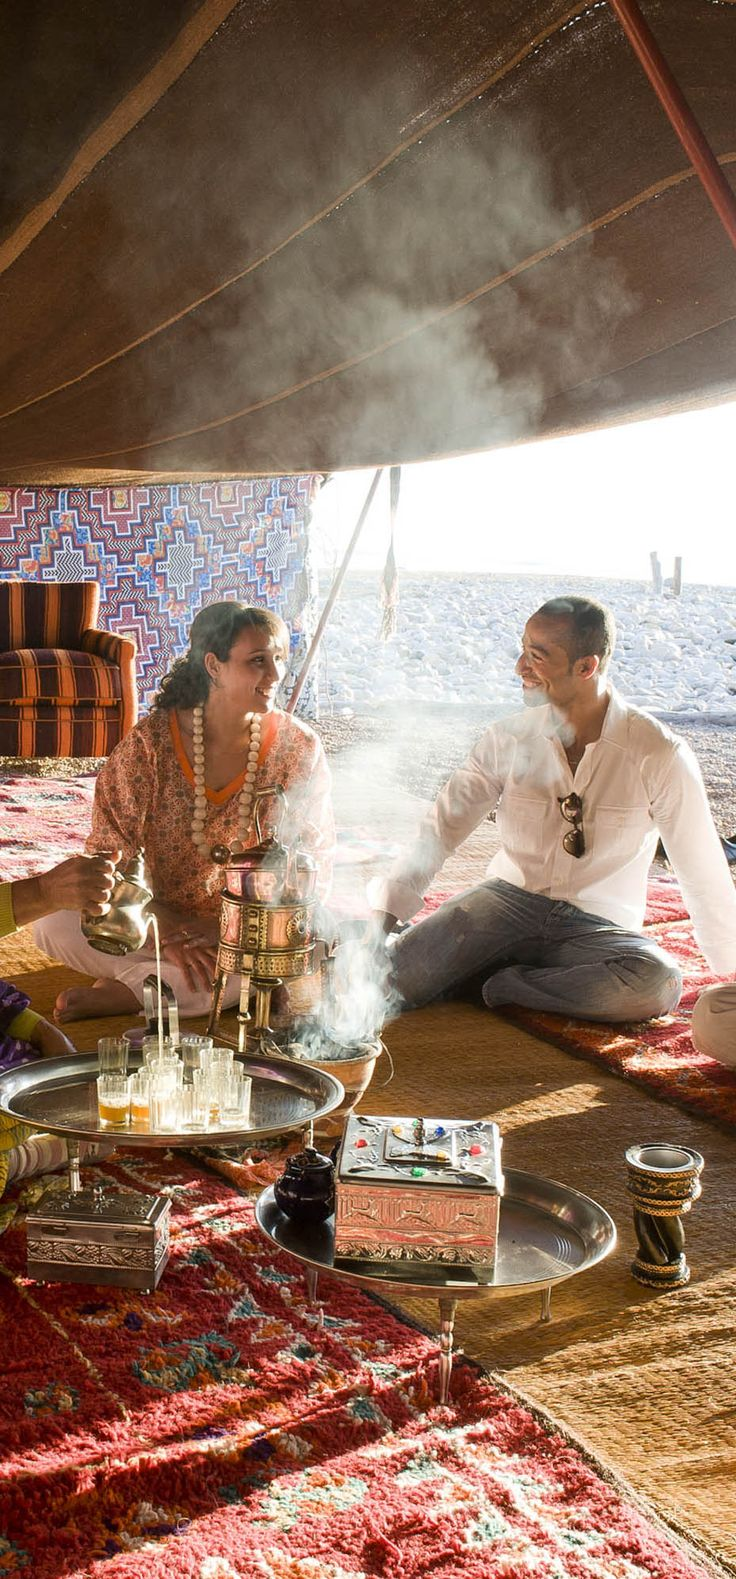 Our exclusive Discover Recover Morocco holiday allows you to explore the untouched landscapes and ancient cities, whilst later recovering with beach yoga classes, surf lessons, martial arts and more.